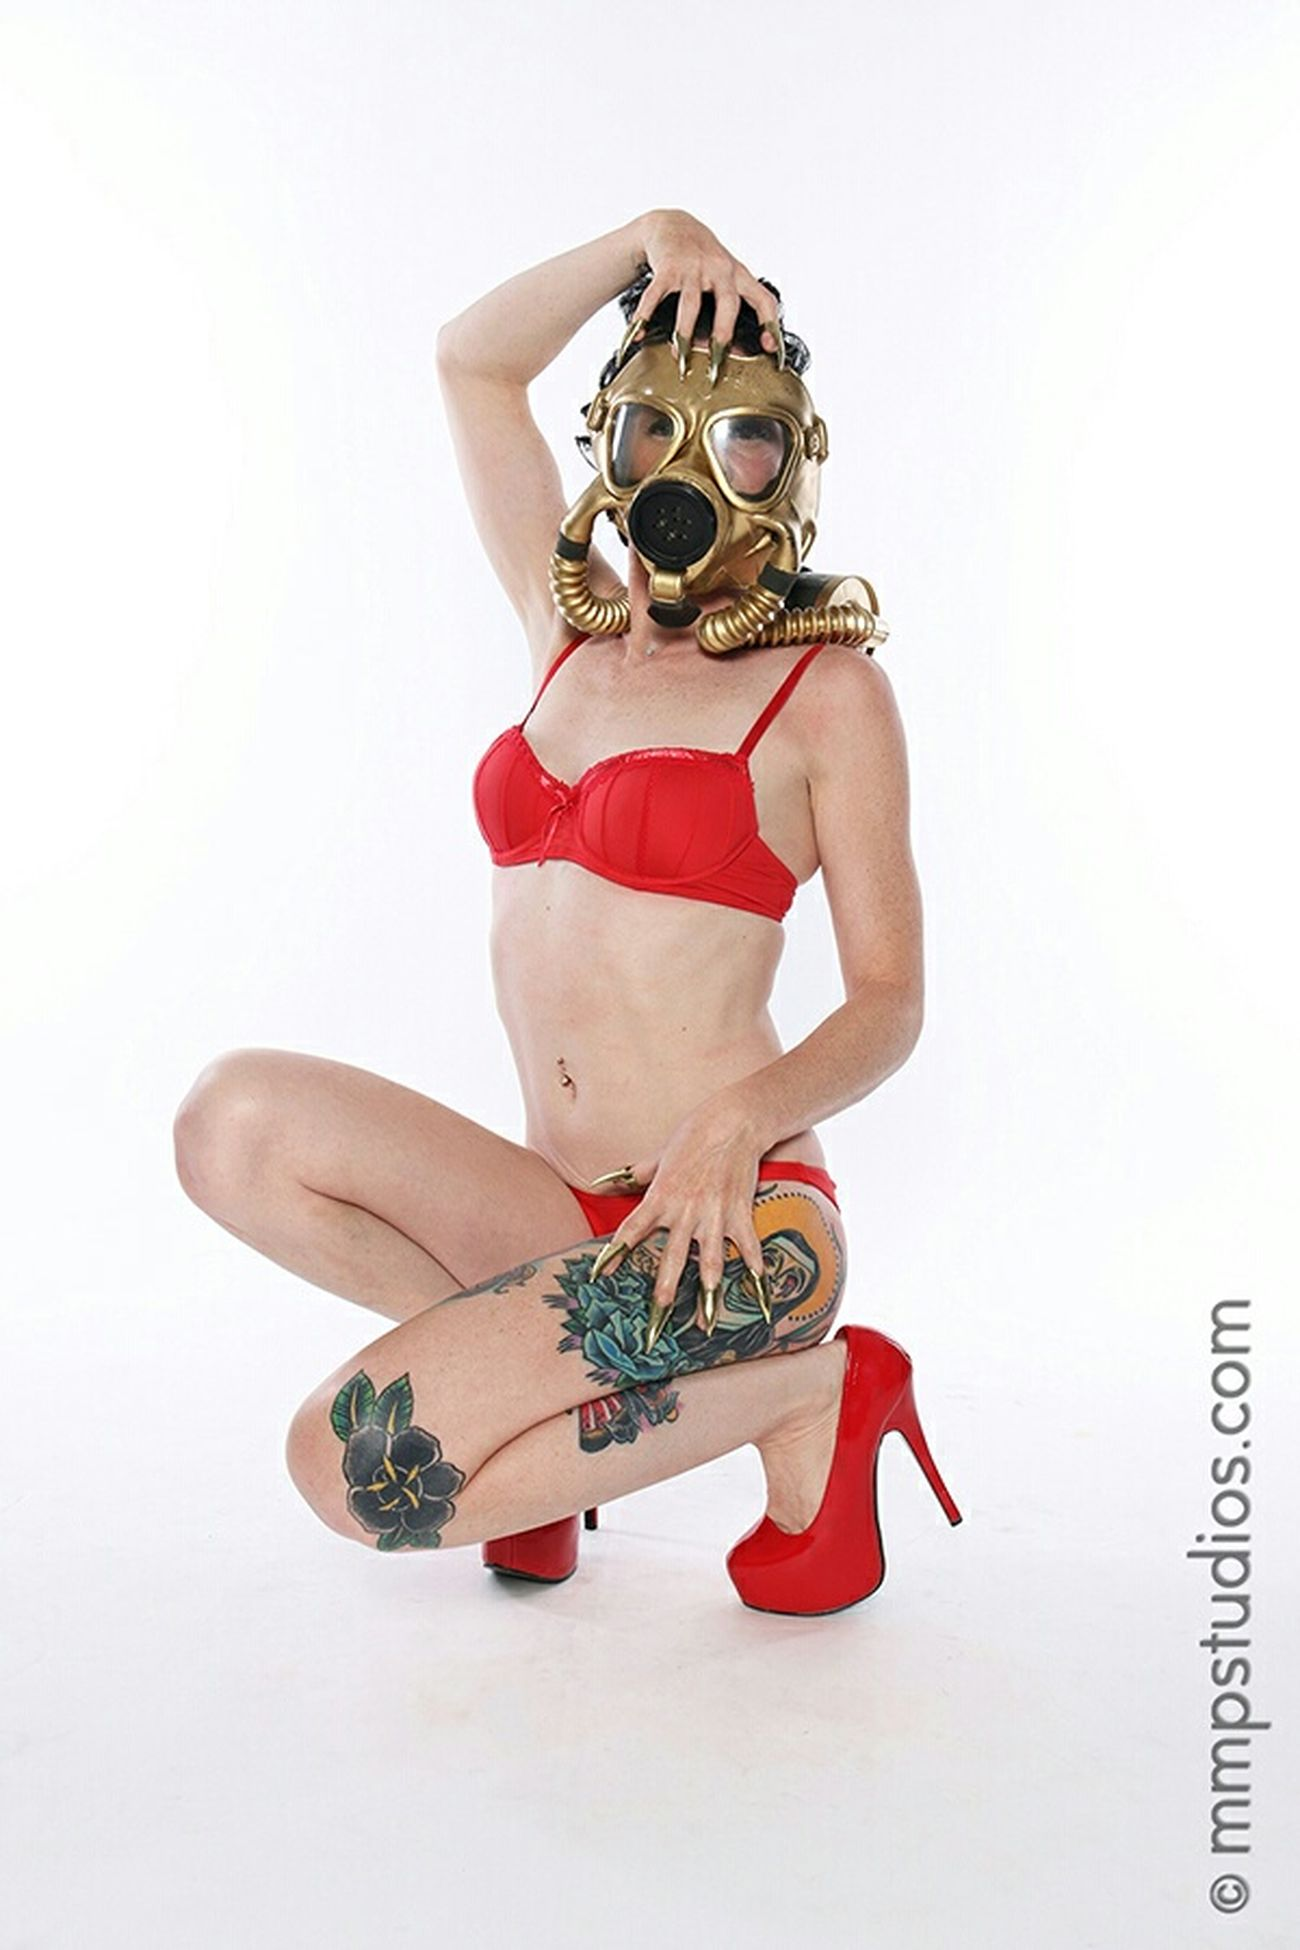 @melvinmaya @mmpstudios_com Photography Photoshoot Model Masked Gasmask High Heels Red Heels Killer Nails Gold Mask Gold Nails Tattoos Inked People Random Studio Shoot Houston Texas Followme